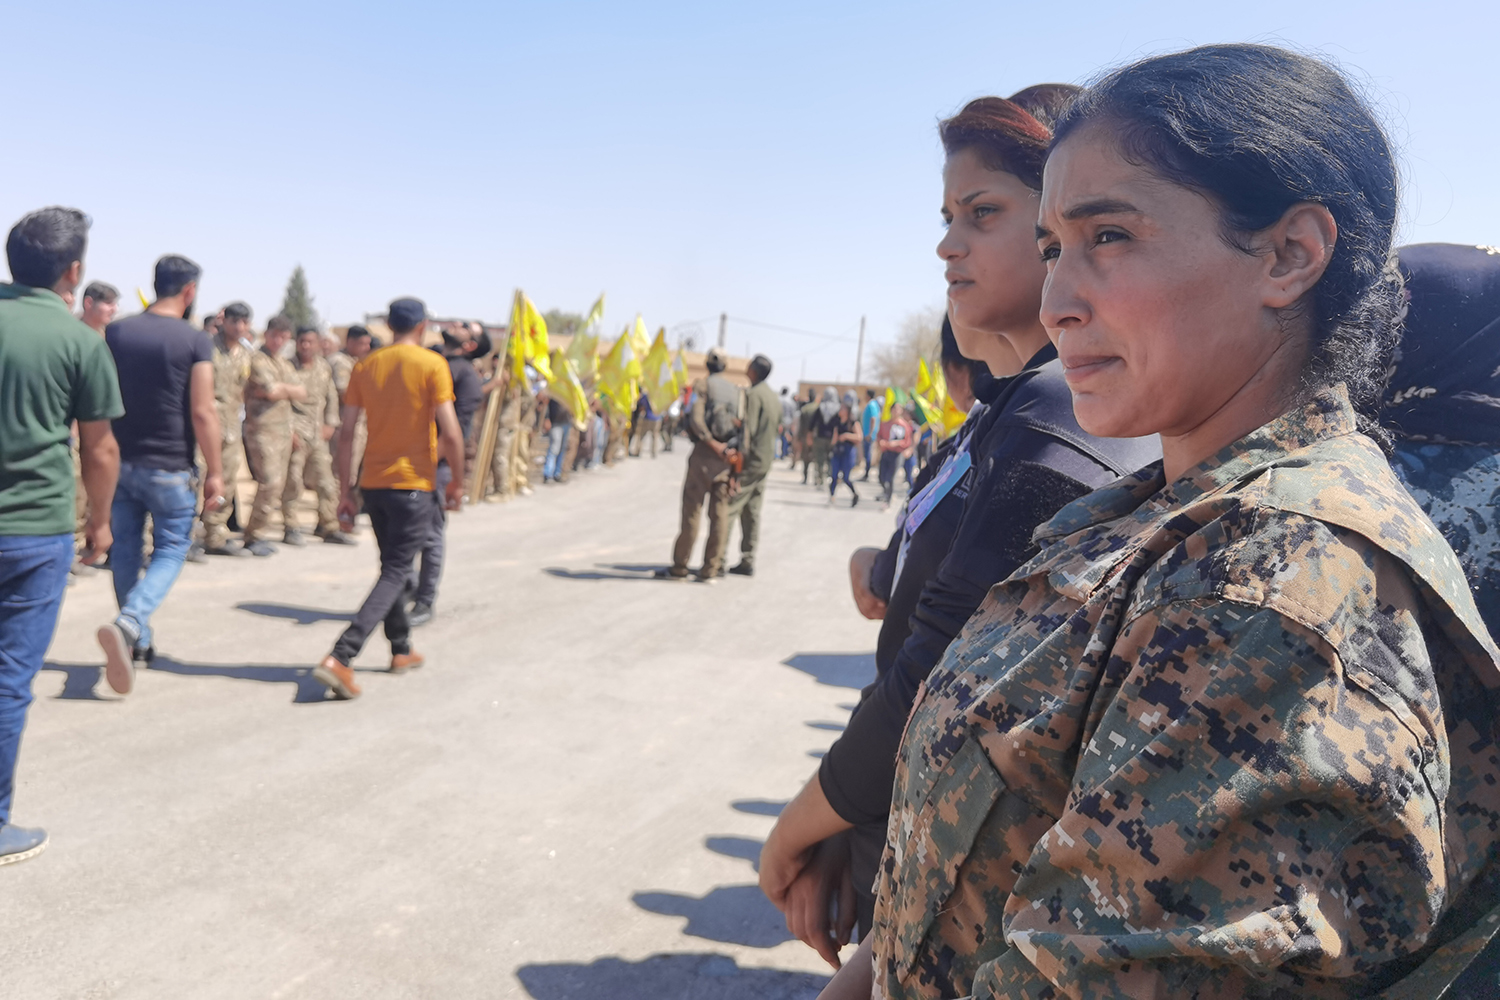 Serekaniye attends the funeral of her commander, Sosin Ahmed, in northeast Syria in Aug. 22. Ahmed was killed in a drone strike about a week before Serekaniye was killed.